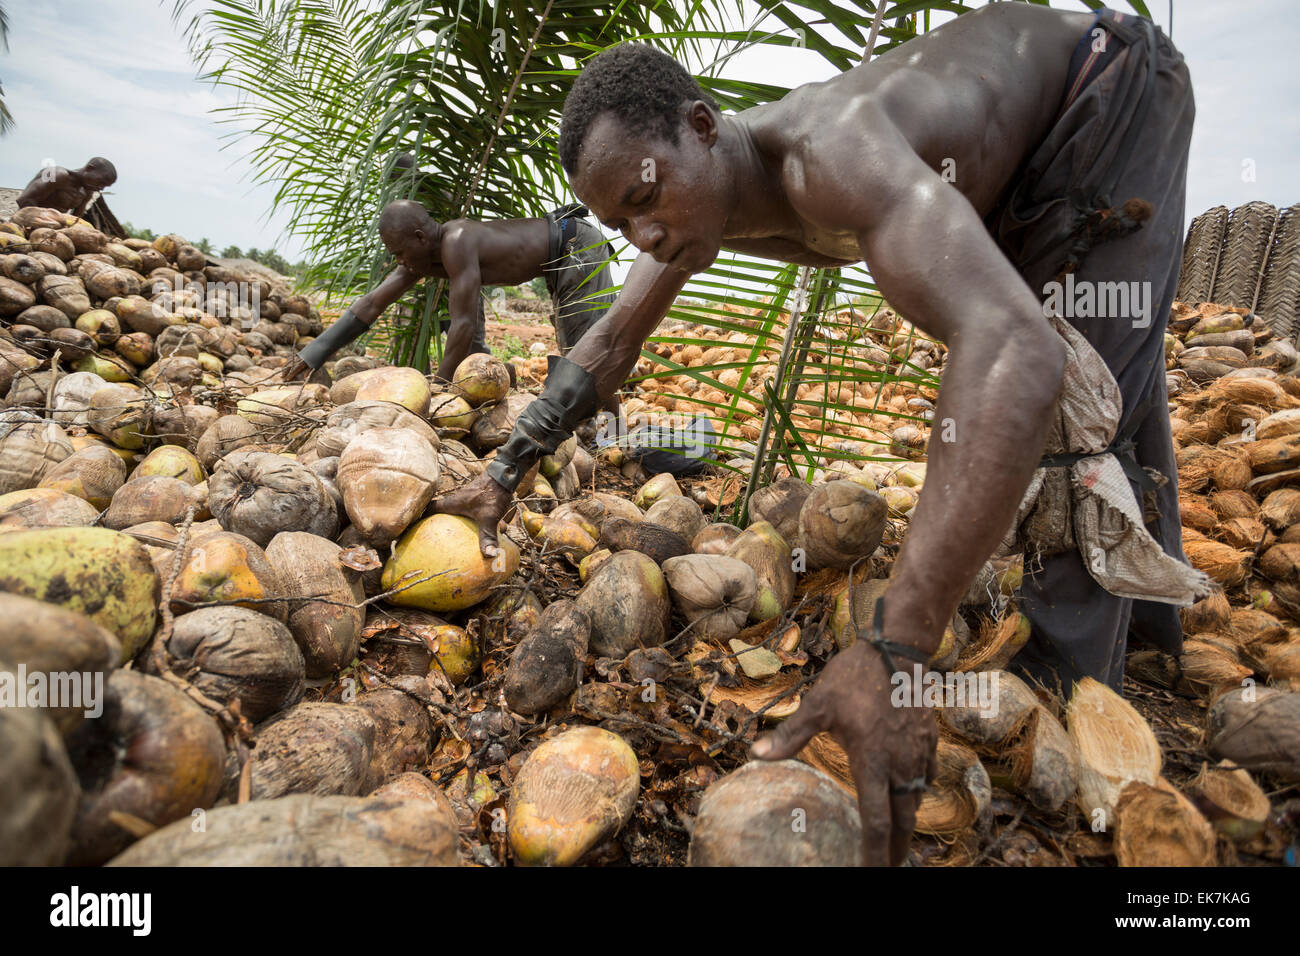 A worker husks coconuts at a fair trade coconut producer in Grand Bassam, Ivory Coast, West Africa. - Stock Image